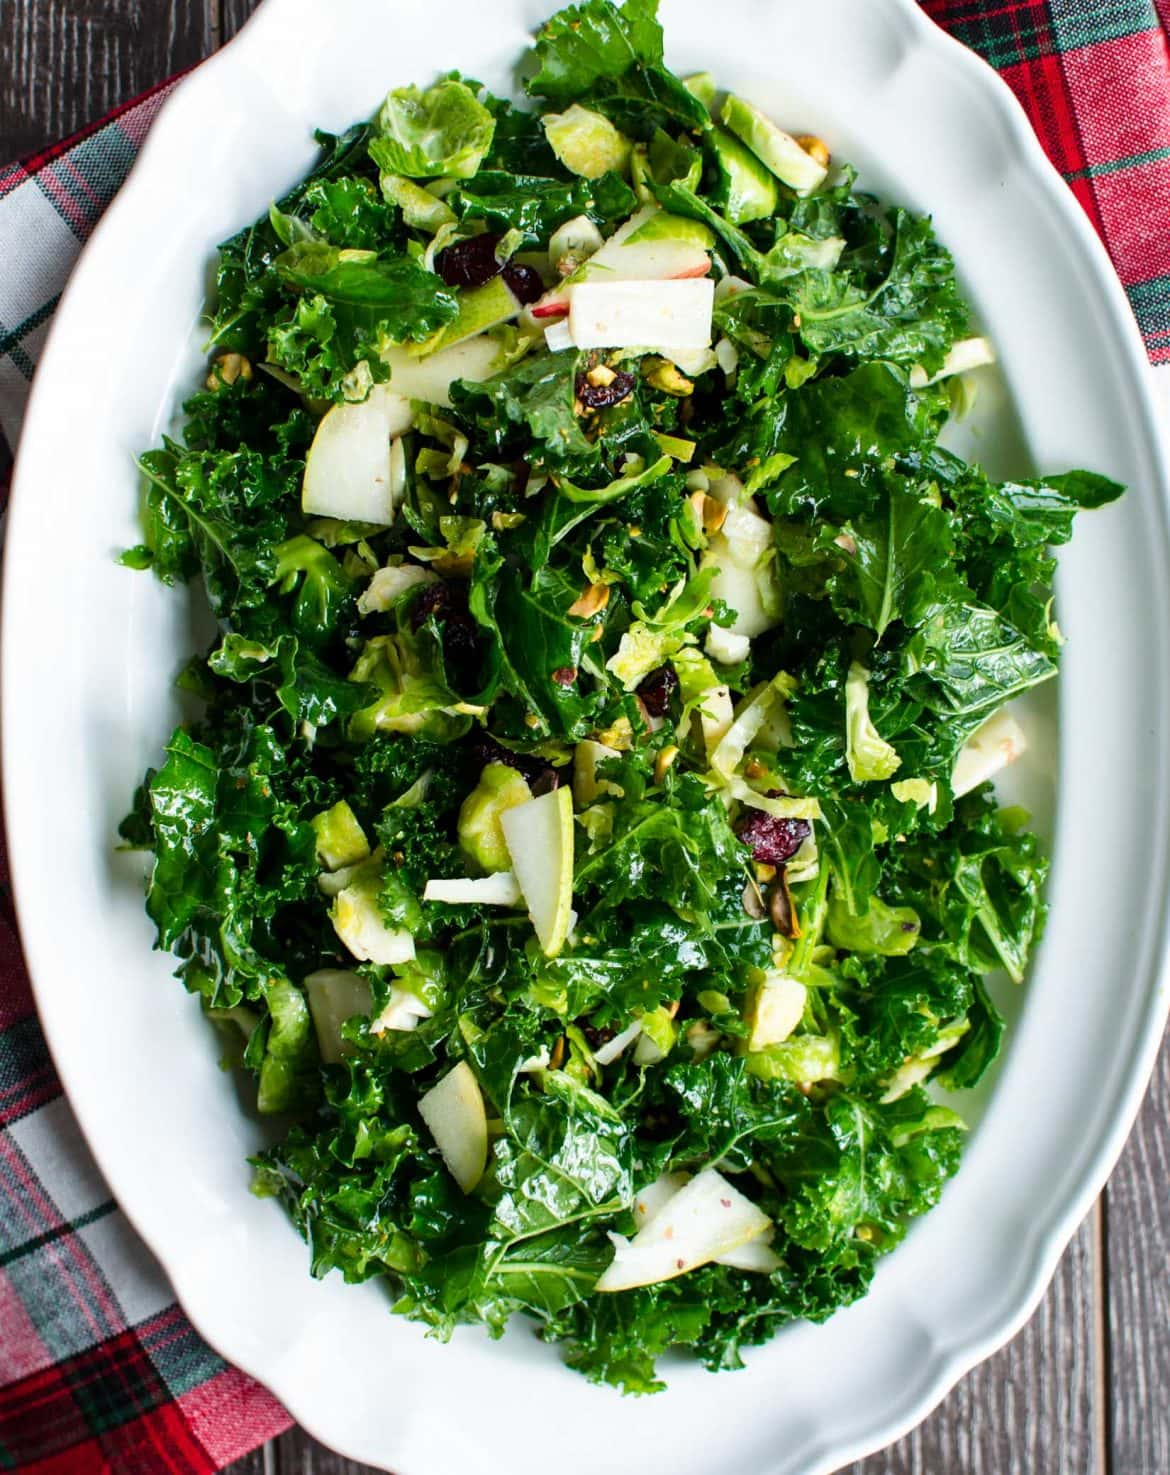 A festive kale salad with Brussels sprouts, apples, cranberries, pistachios, Parmesan, and a sweet + tangy apple cider vinaigrette. Tips on how to style a salad for a holiday party.